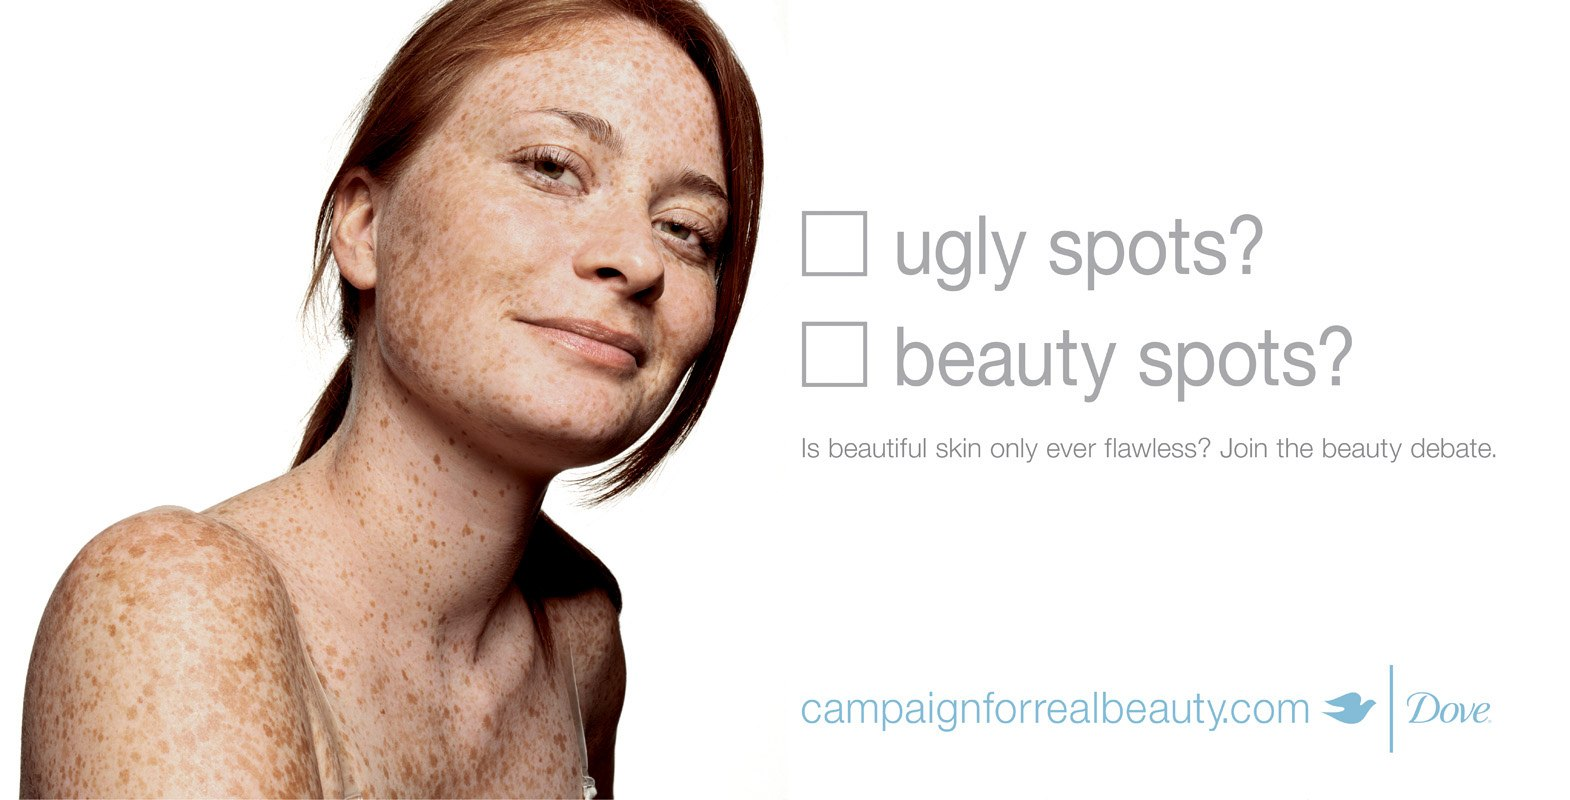 dove_beauty_spots ogilvy